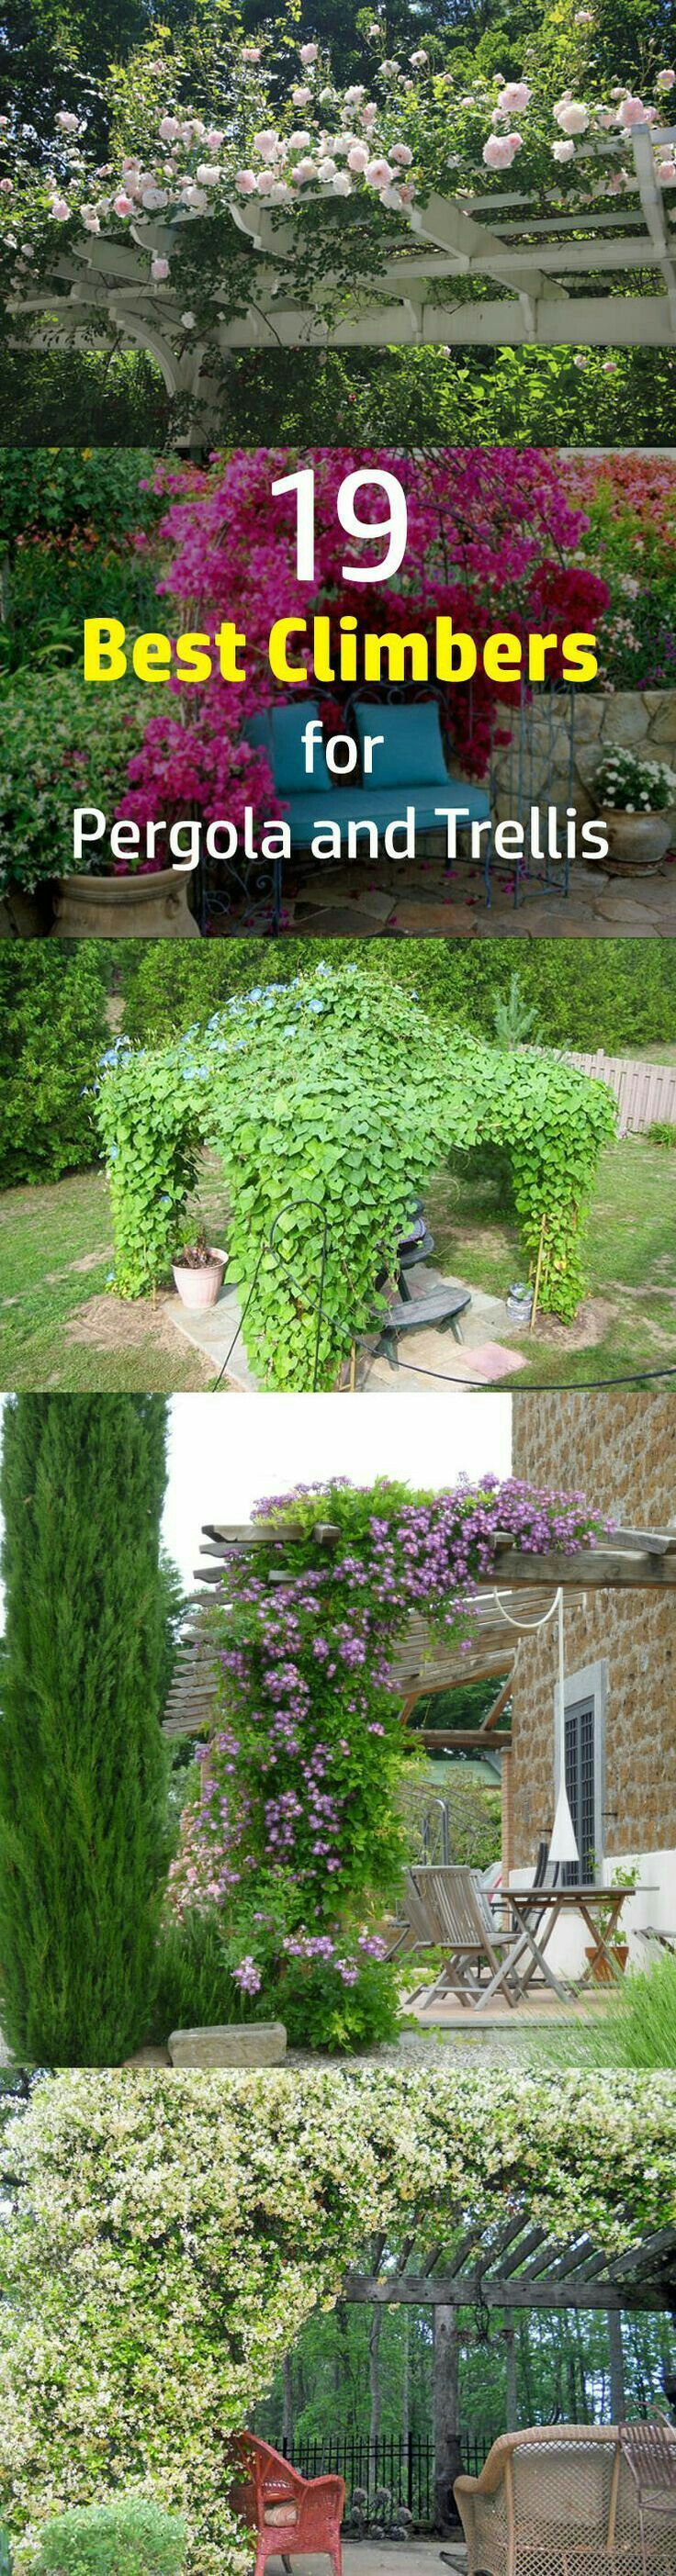 19 Best Climbing Plants for Pergolas and Trellises - 19 Best Climbing Plants For Pergolas And Trellises Climbers